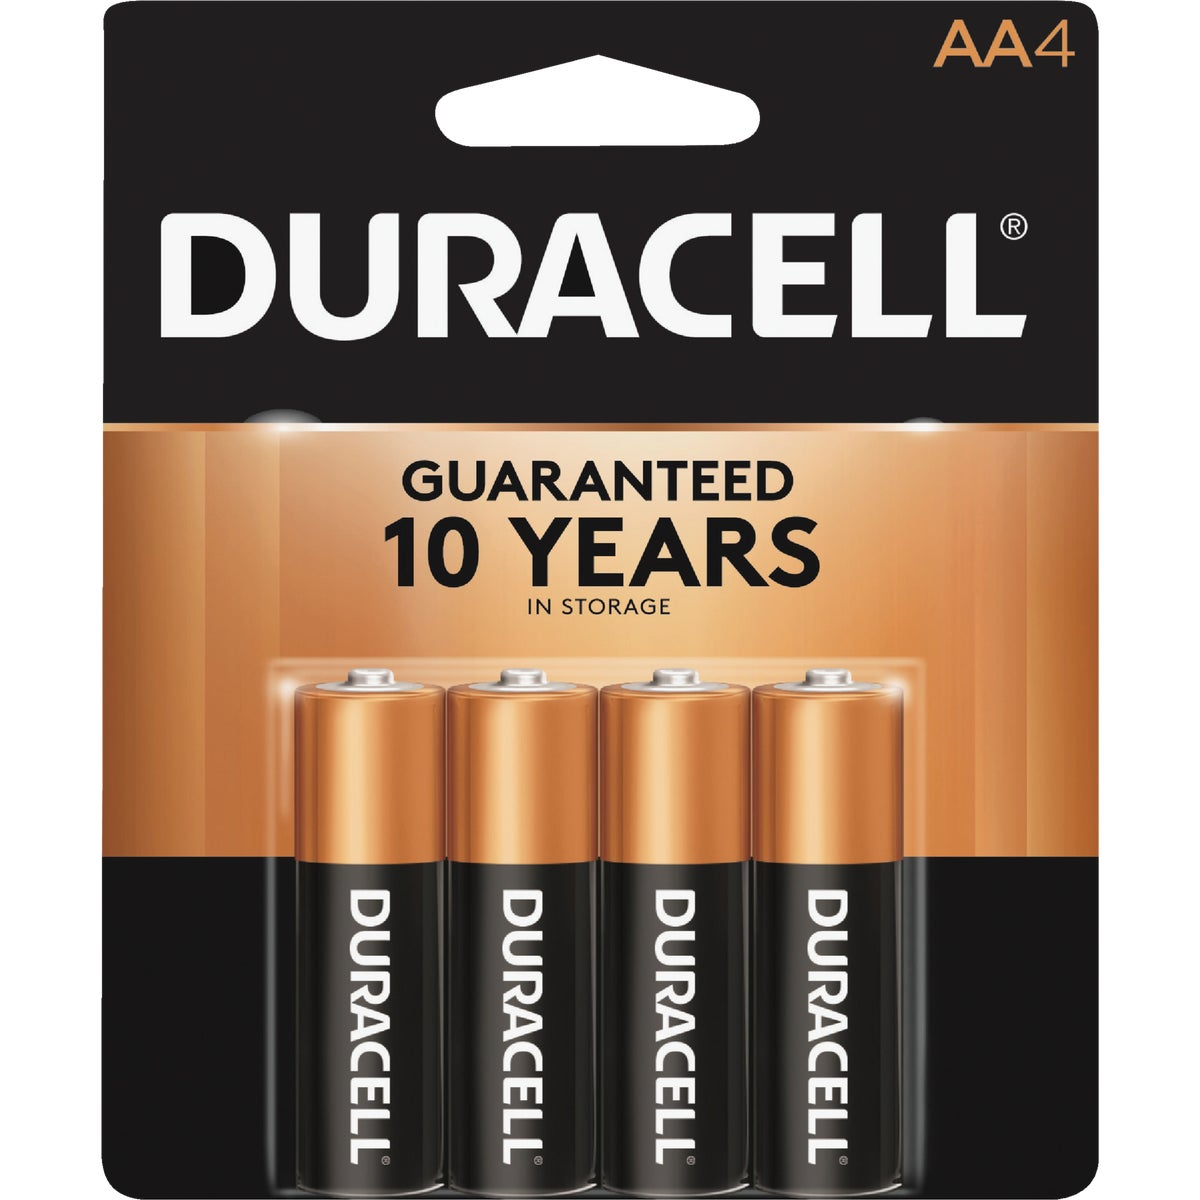 4PK AA ALKALINE BATTERY - 03561 by P & G  Duracell